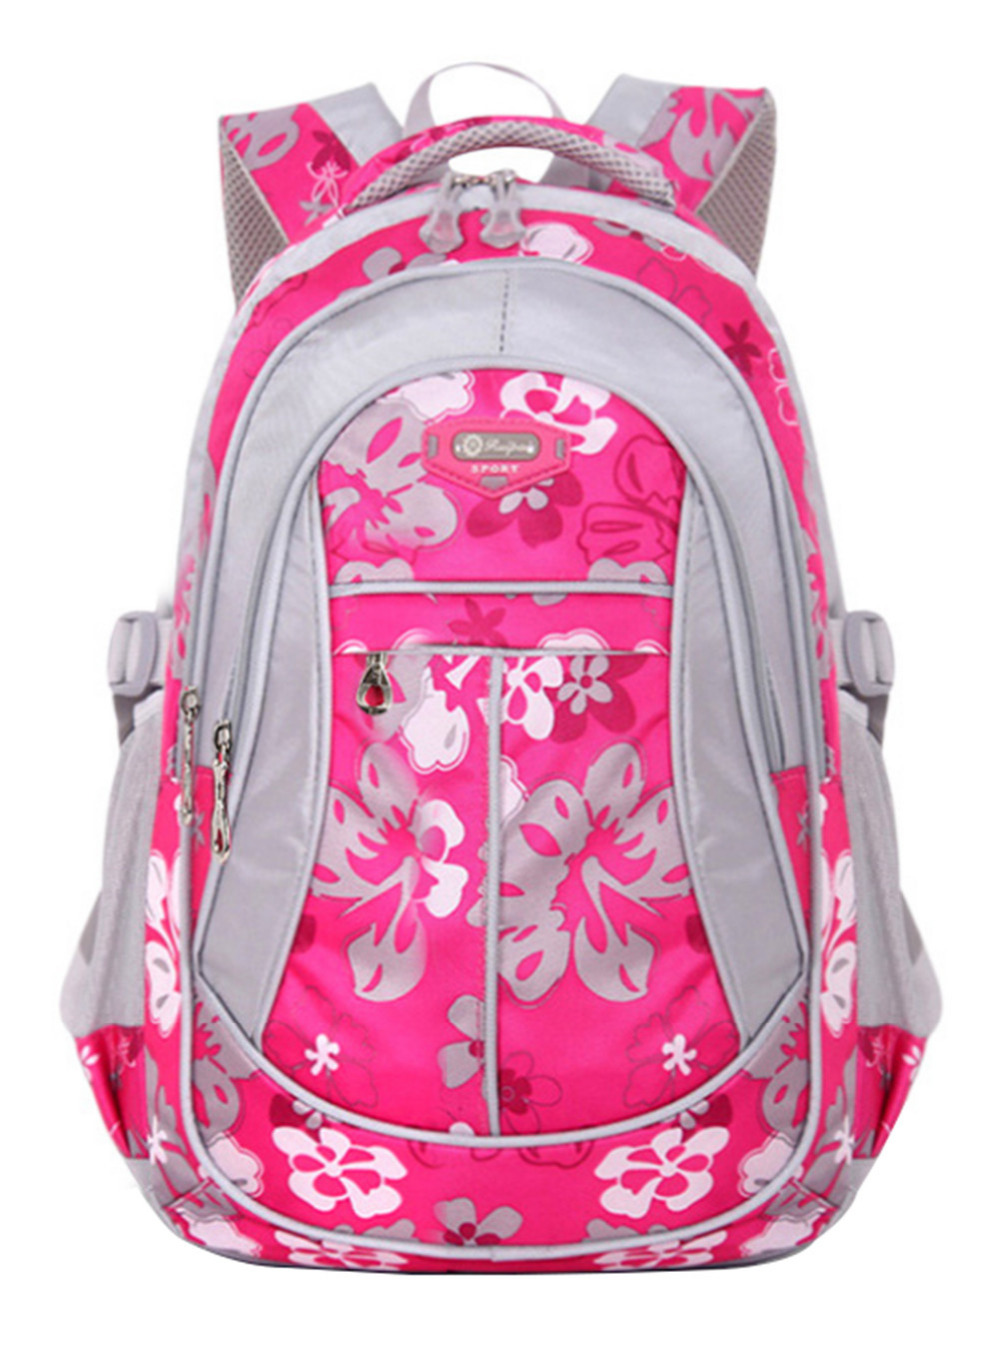 Children School Bags For Girls Boys New Floral Printing Backpack Kids Book Bag Primary School Student